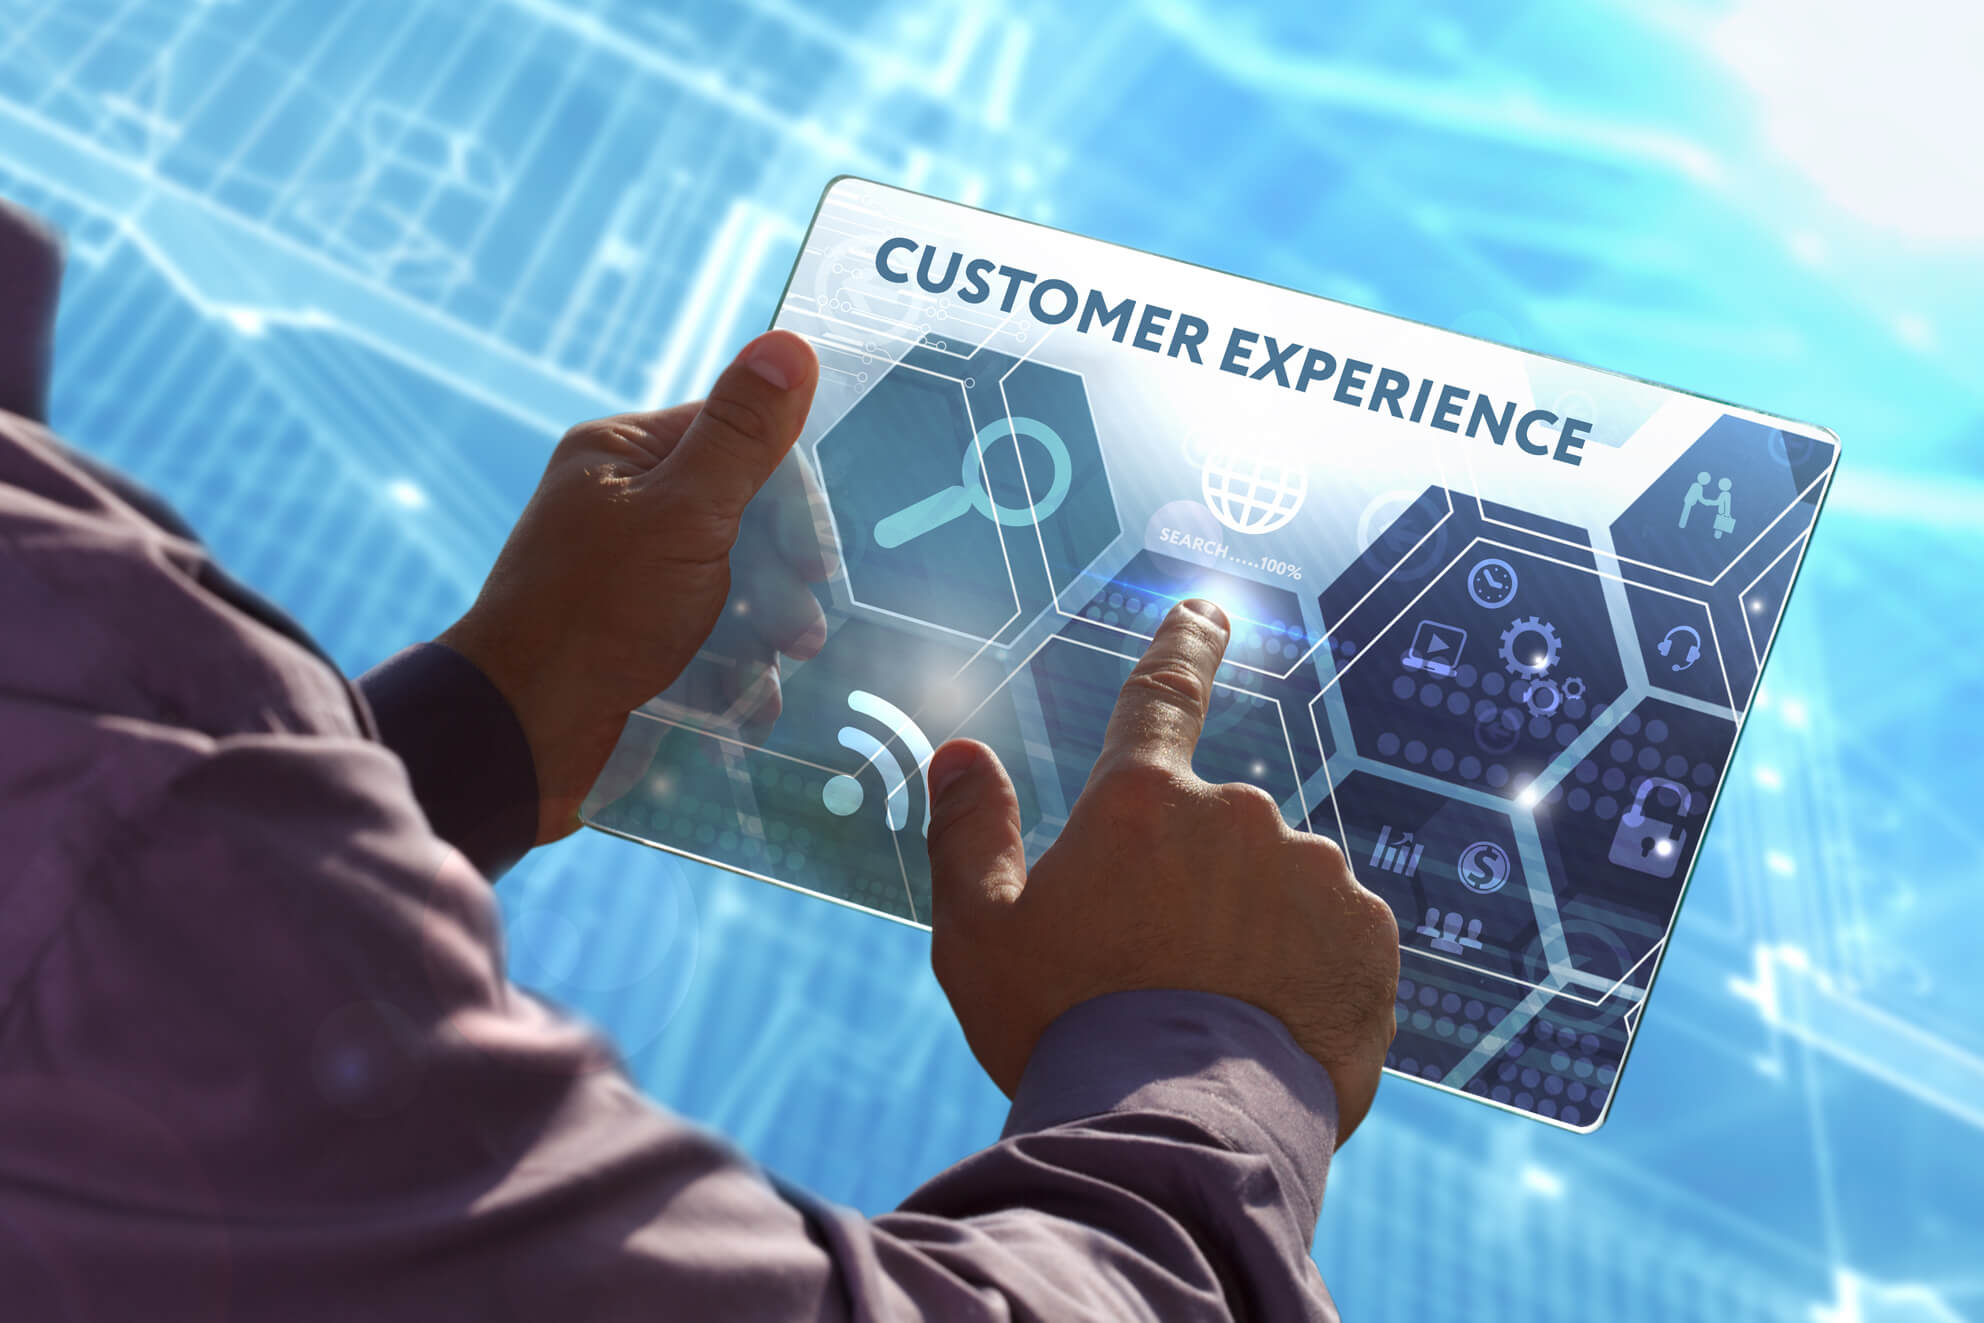 Customer experience on tablet